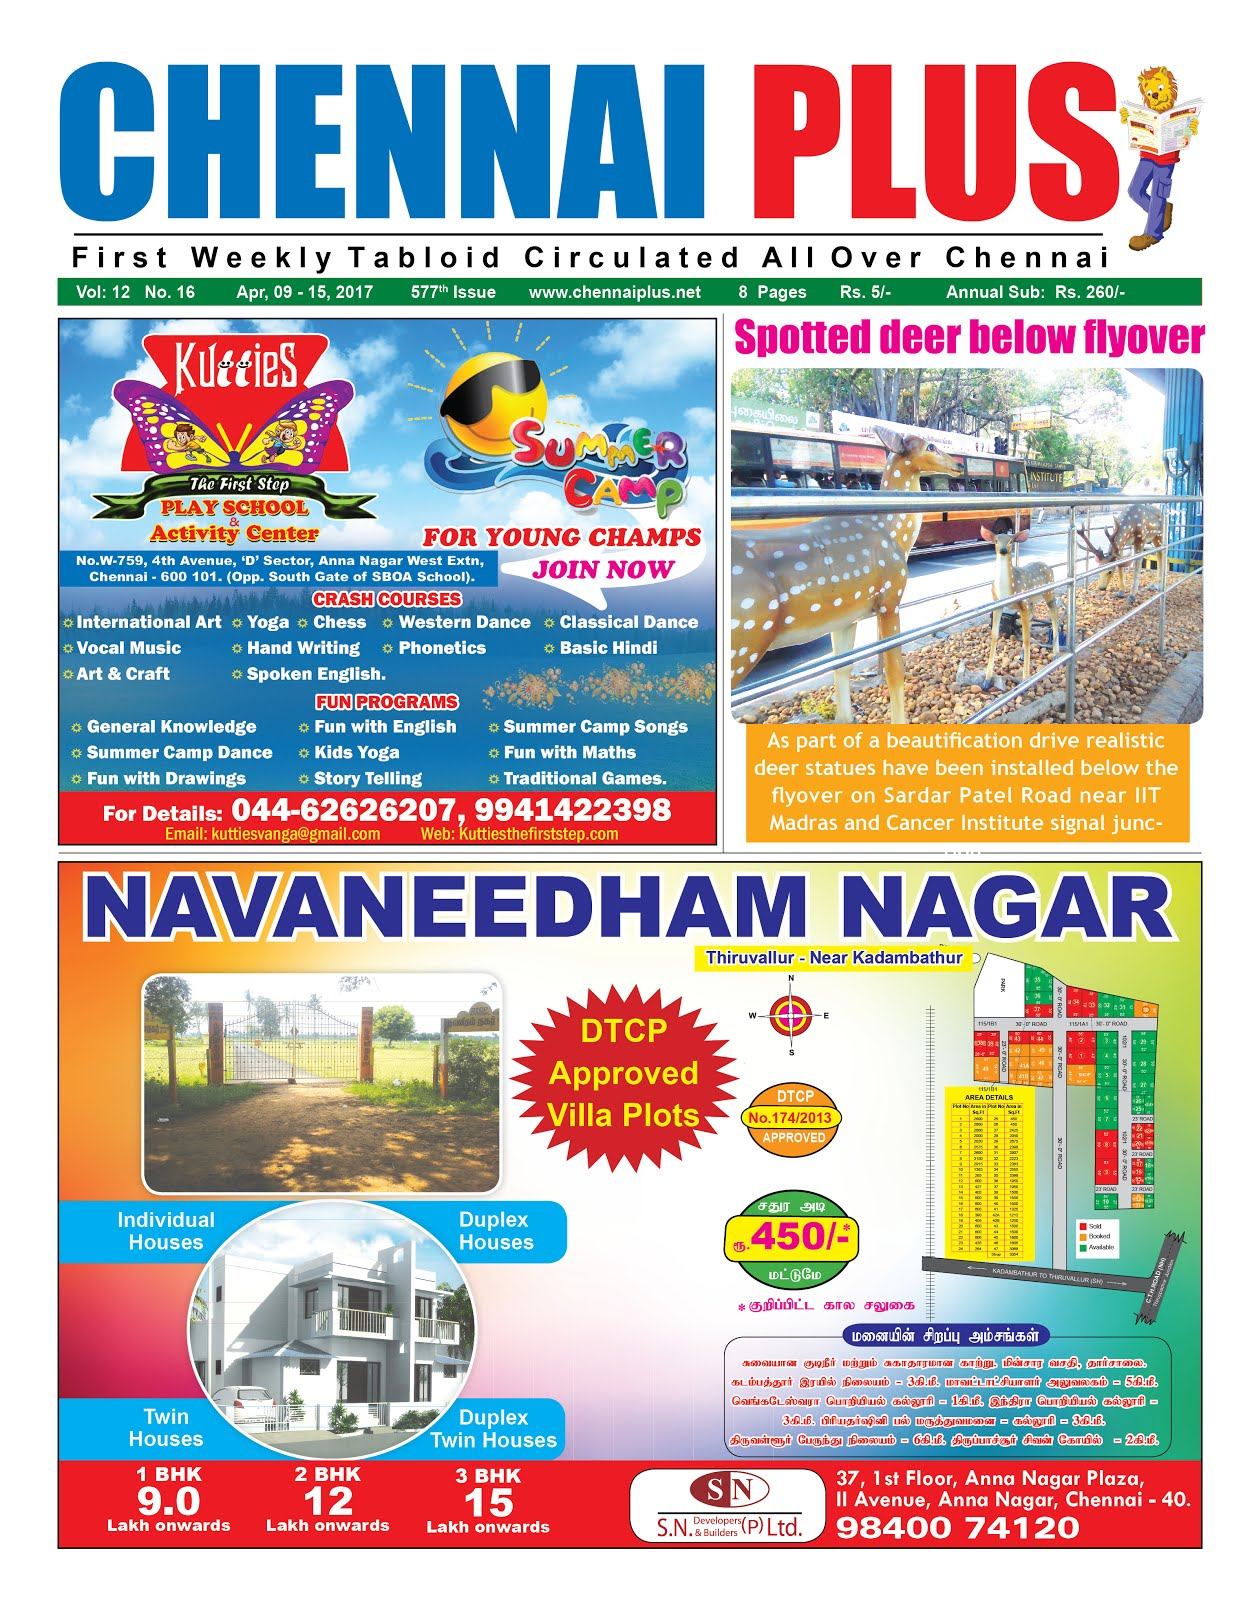 Chennai Plus_09.04.2017_Issue